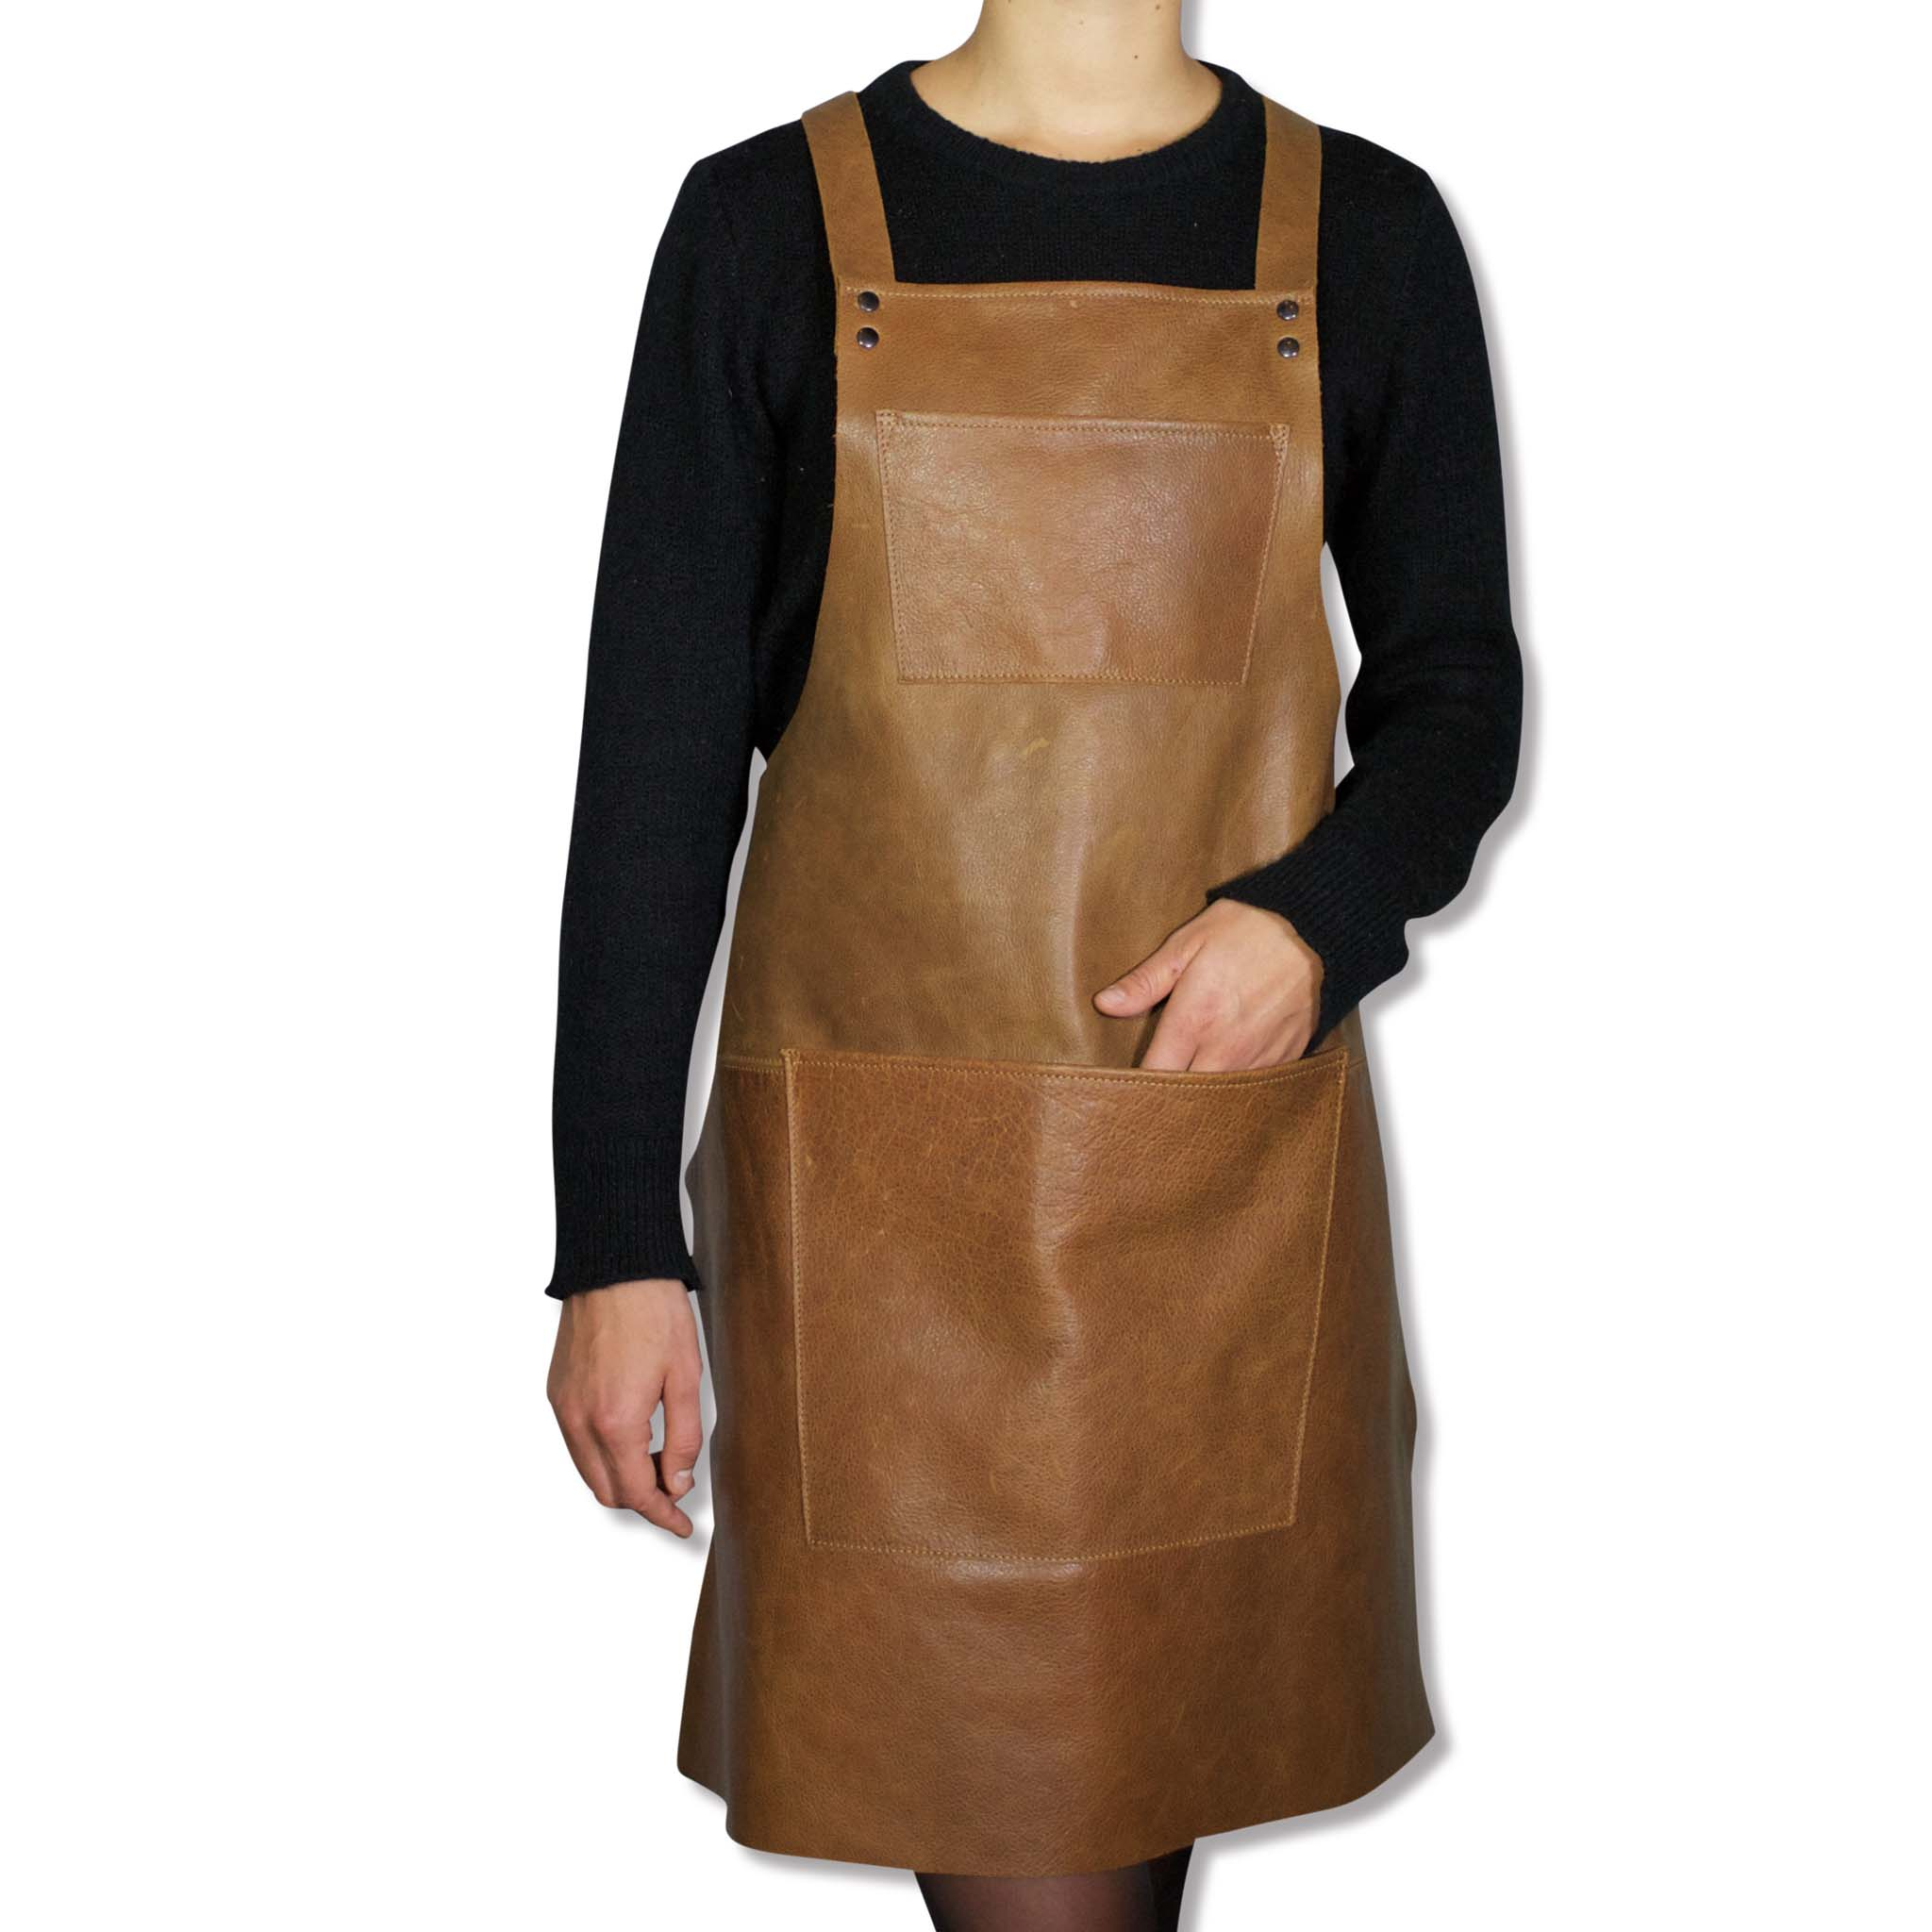 Dutchdeluxes Leather Suspender Apron in Vintage Camel Cookware Kitchen Clothing